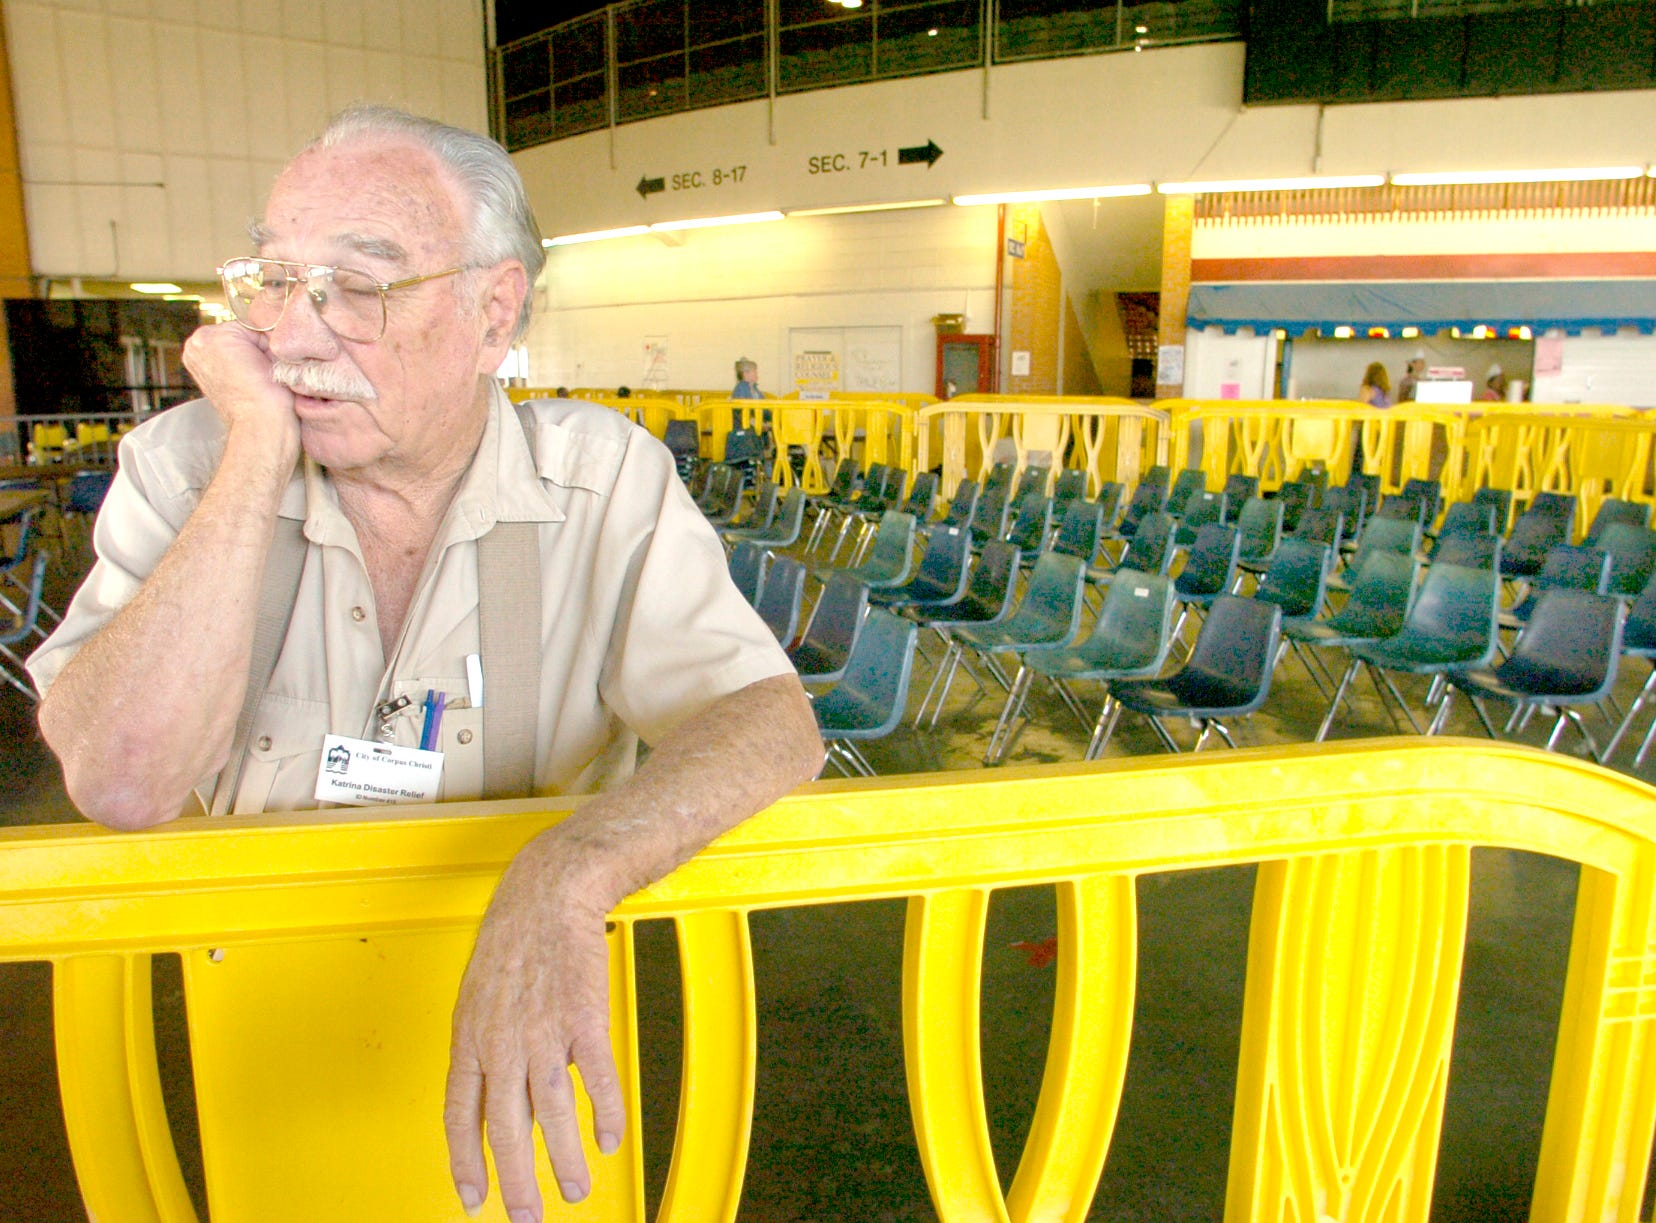 Merlin Soler, 83, evacuee from New Orleans, relaxes at Memorial Coliseum Sept. 19, 2005 as he keeps a eye on a near by televisions set broadcasting the latest new of Tropical Storm Rita. Evacuees were temporarily housed in the coliseum, which had closed to public events in 2004.